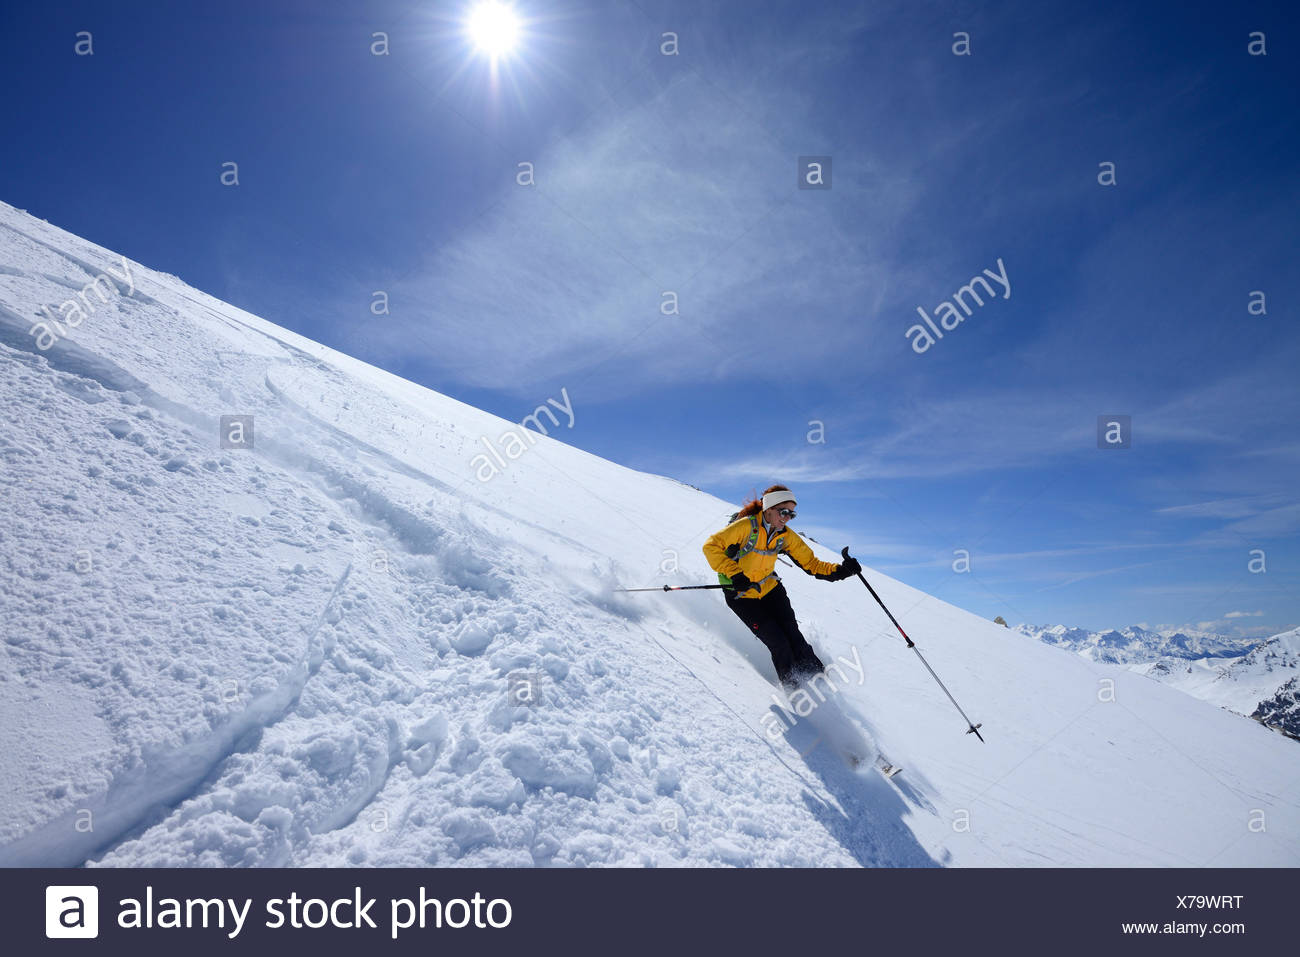 Female backcountry skier downhill skiing, Vallatscha, Sesvenna range, Ofenpass, Grisons, Switzerland - Stock Image